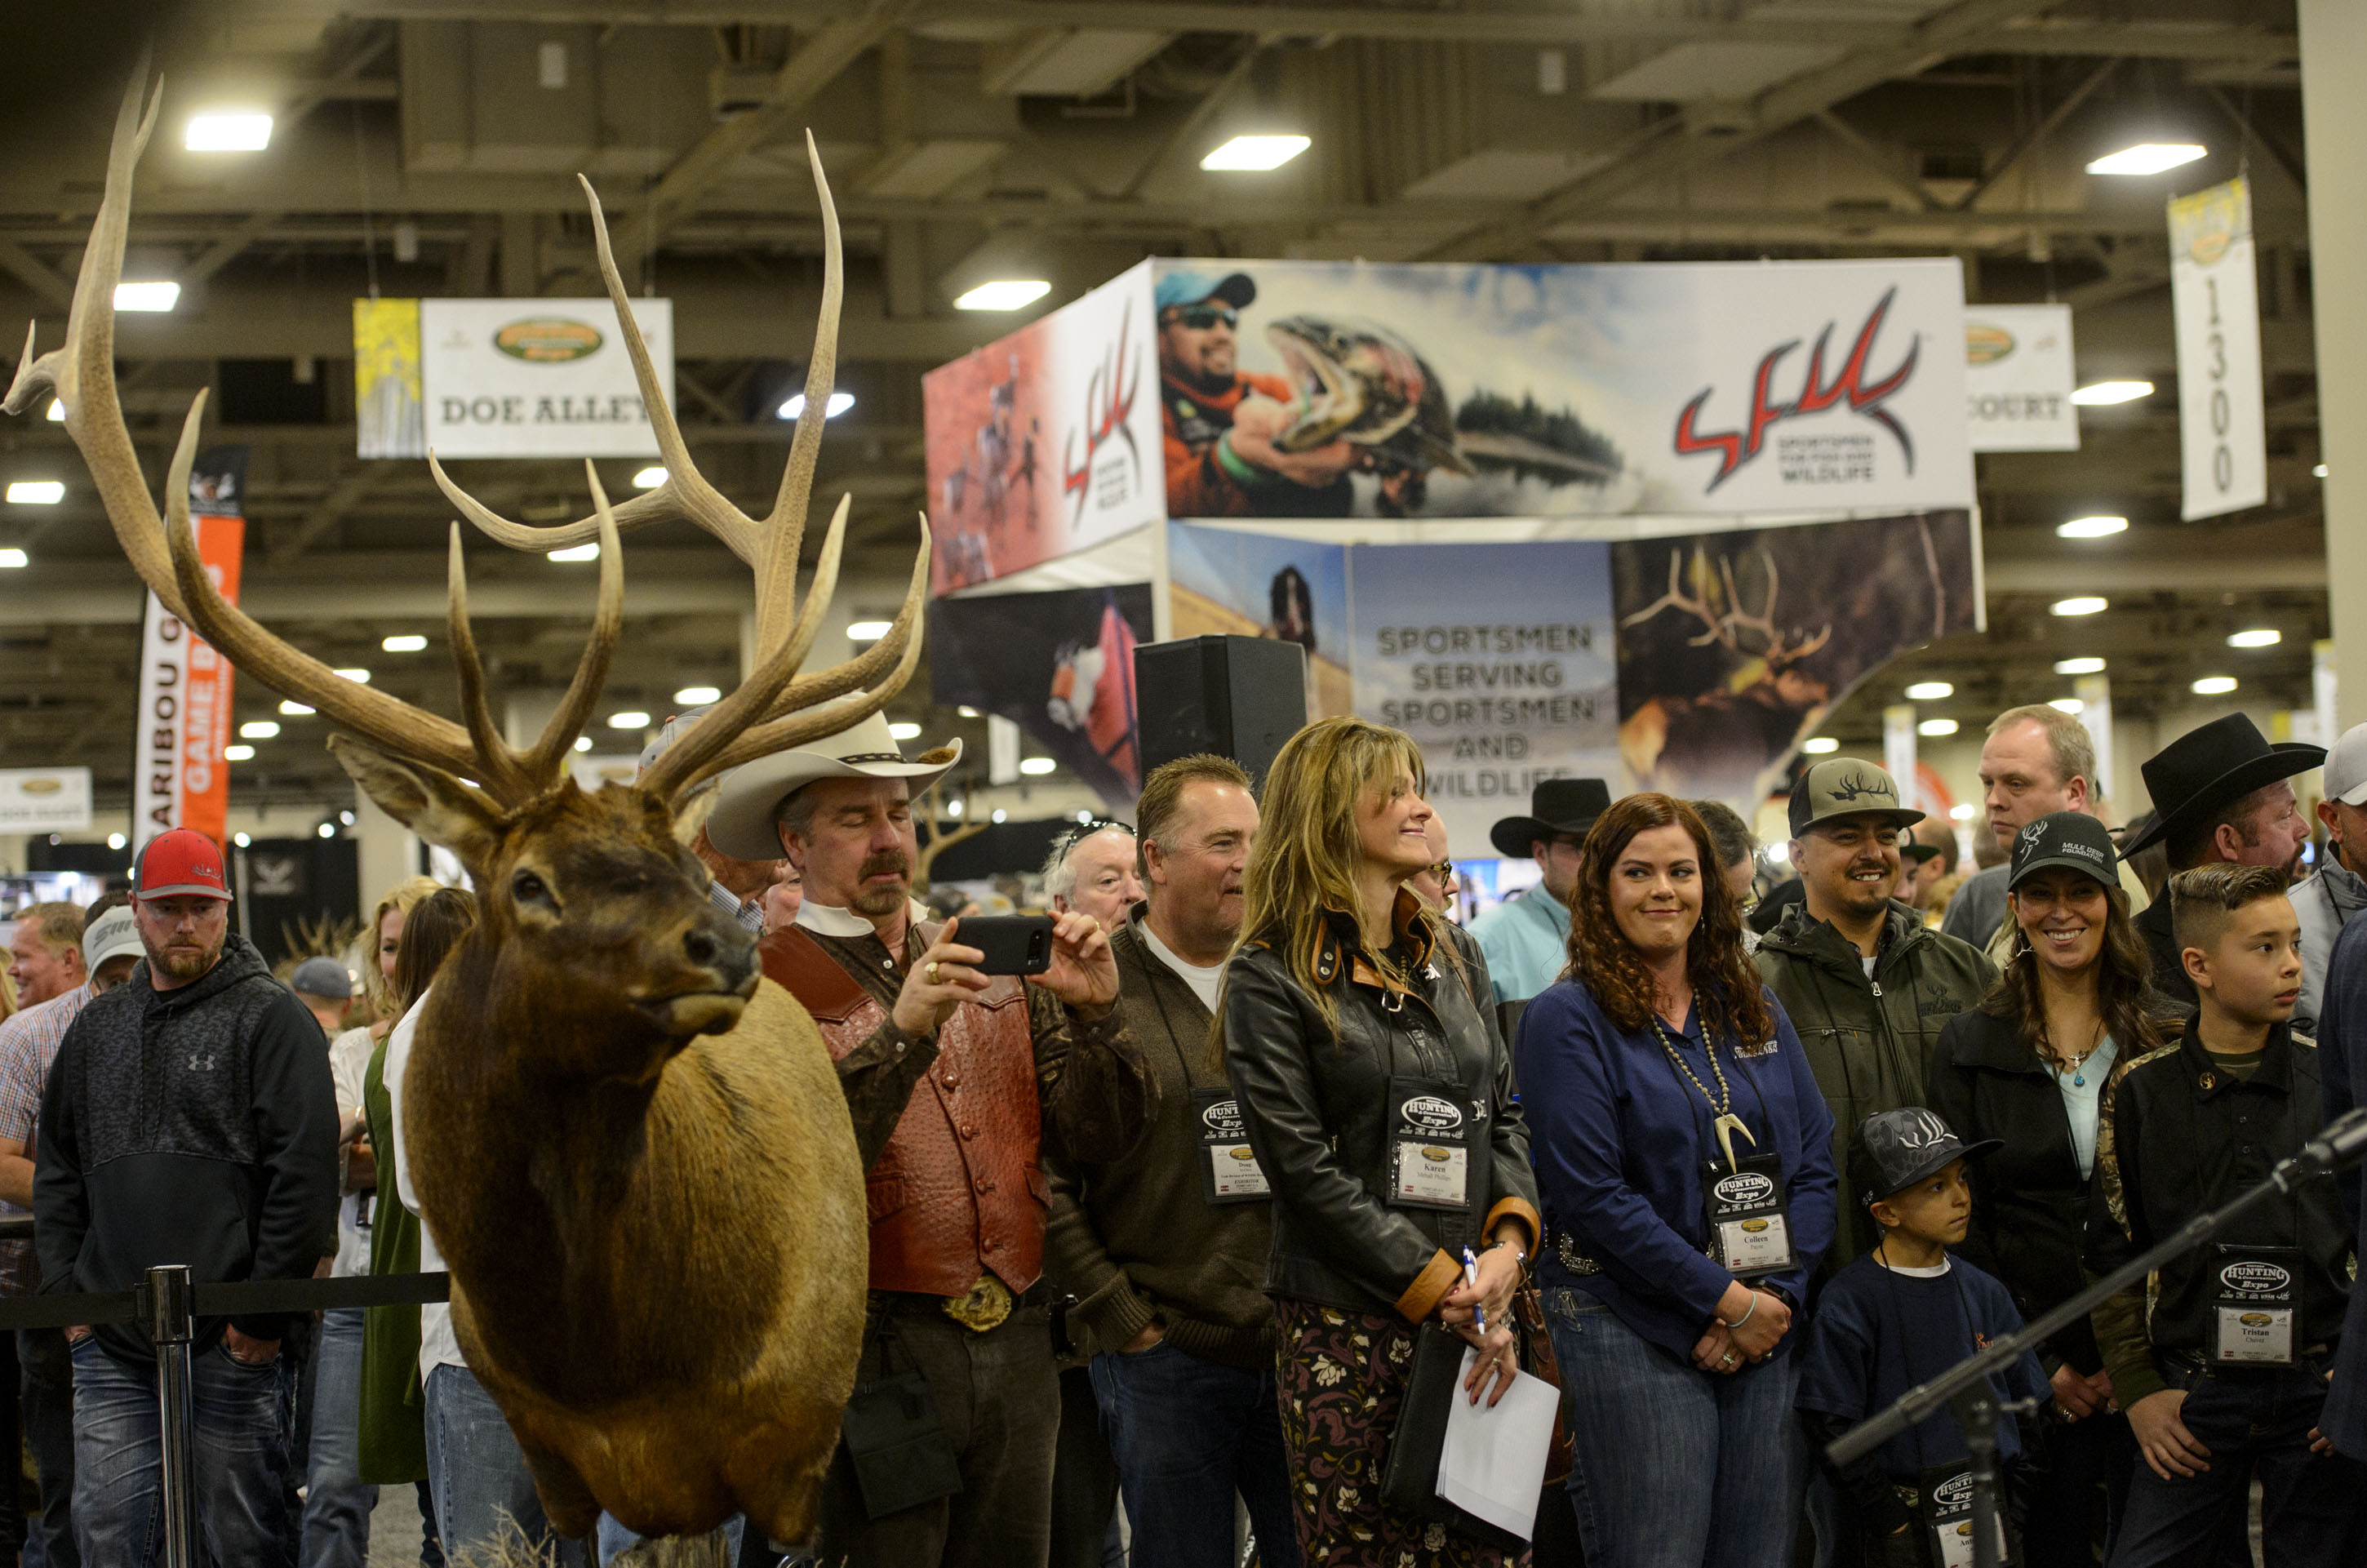 (Steve Griffin  |  The Salt Lake Tribune)  A crowd at the Western Hunting and Conservation Expo at the Salt Palace Convention Center in Salt Lake City on Friday, Feb. 9, 2018 wait for U.S. Secretary of the Interior Ryan Zinke to arrive.